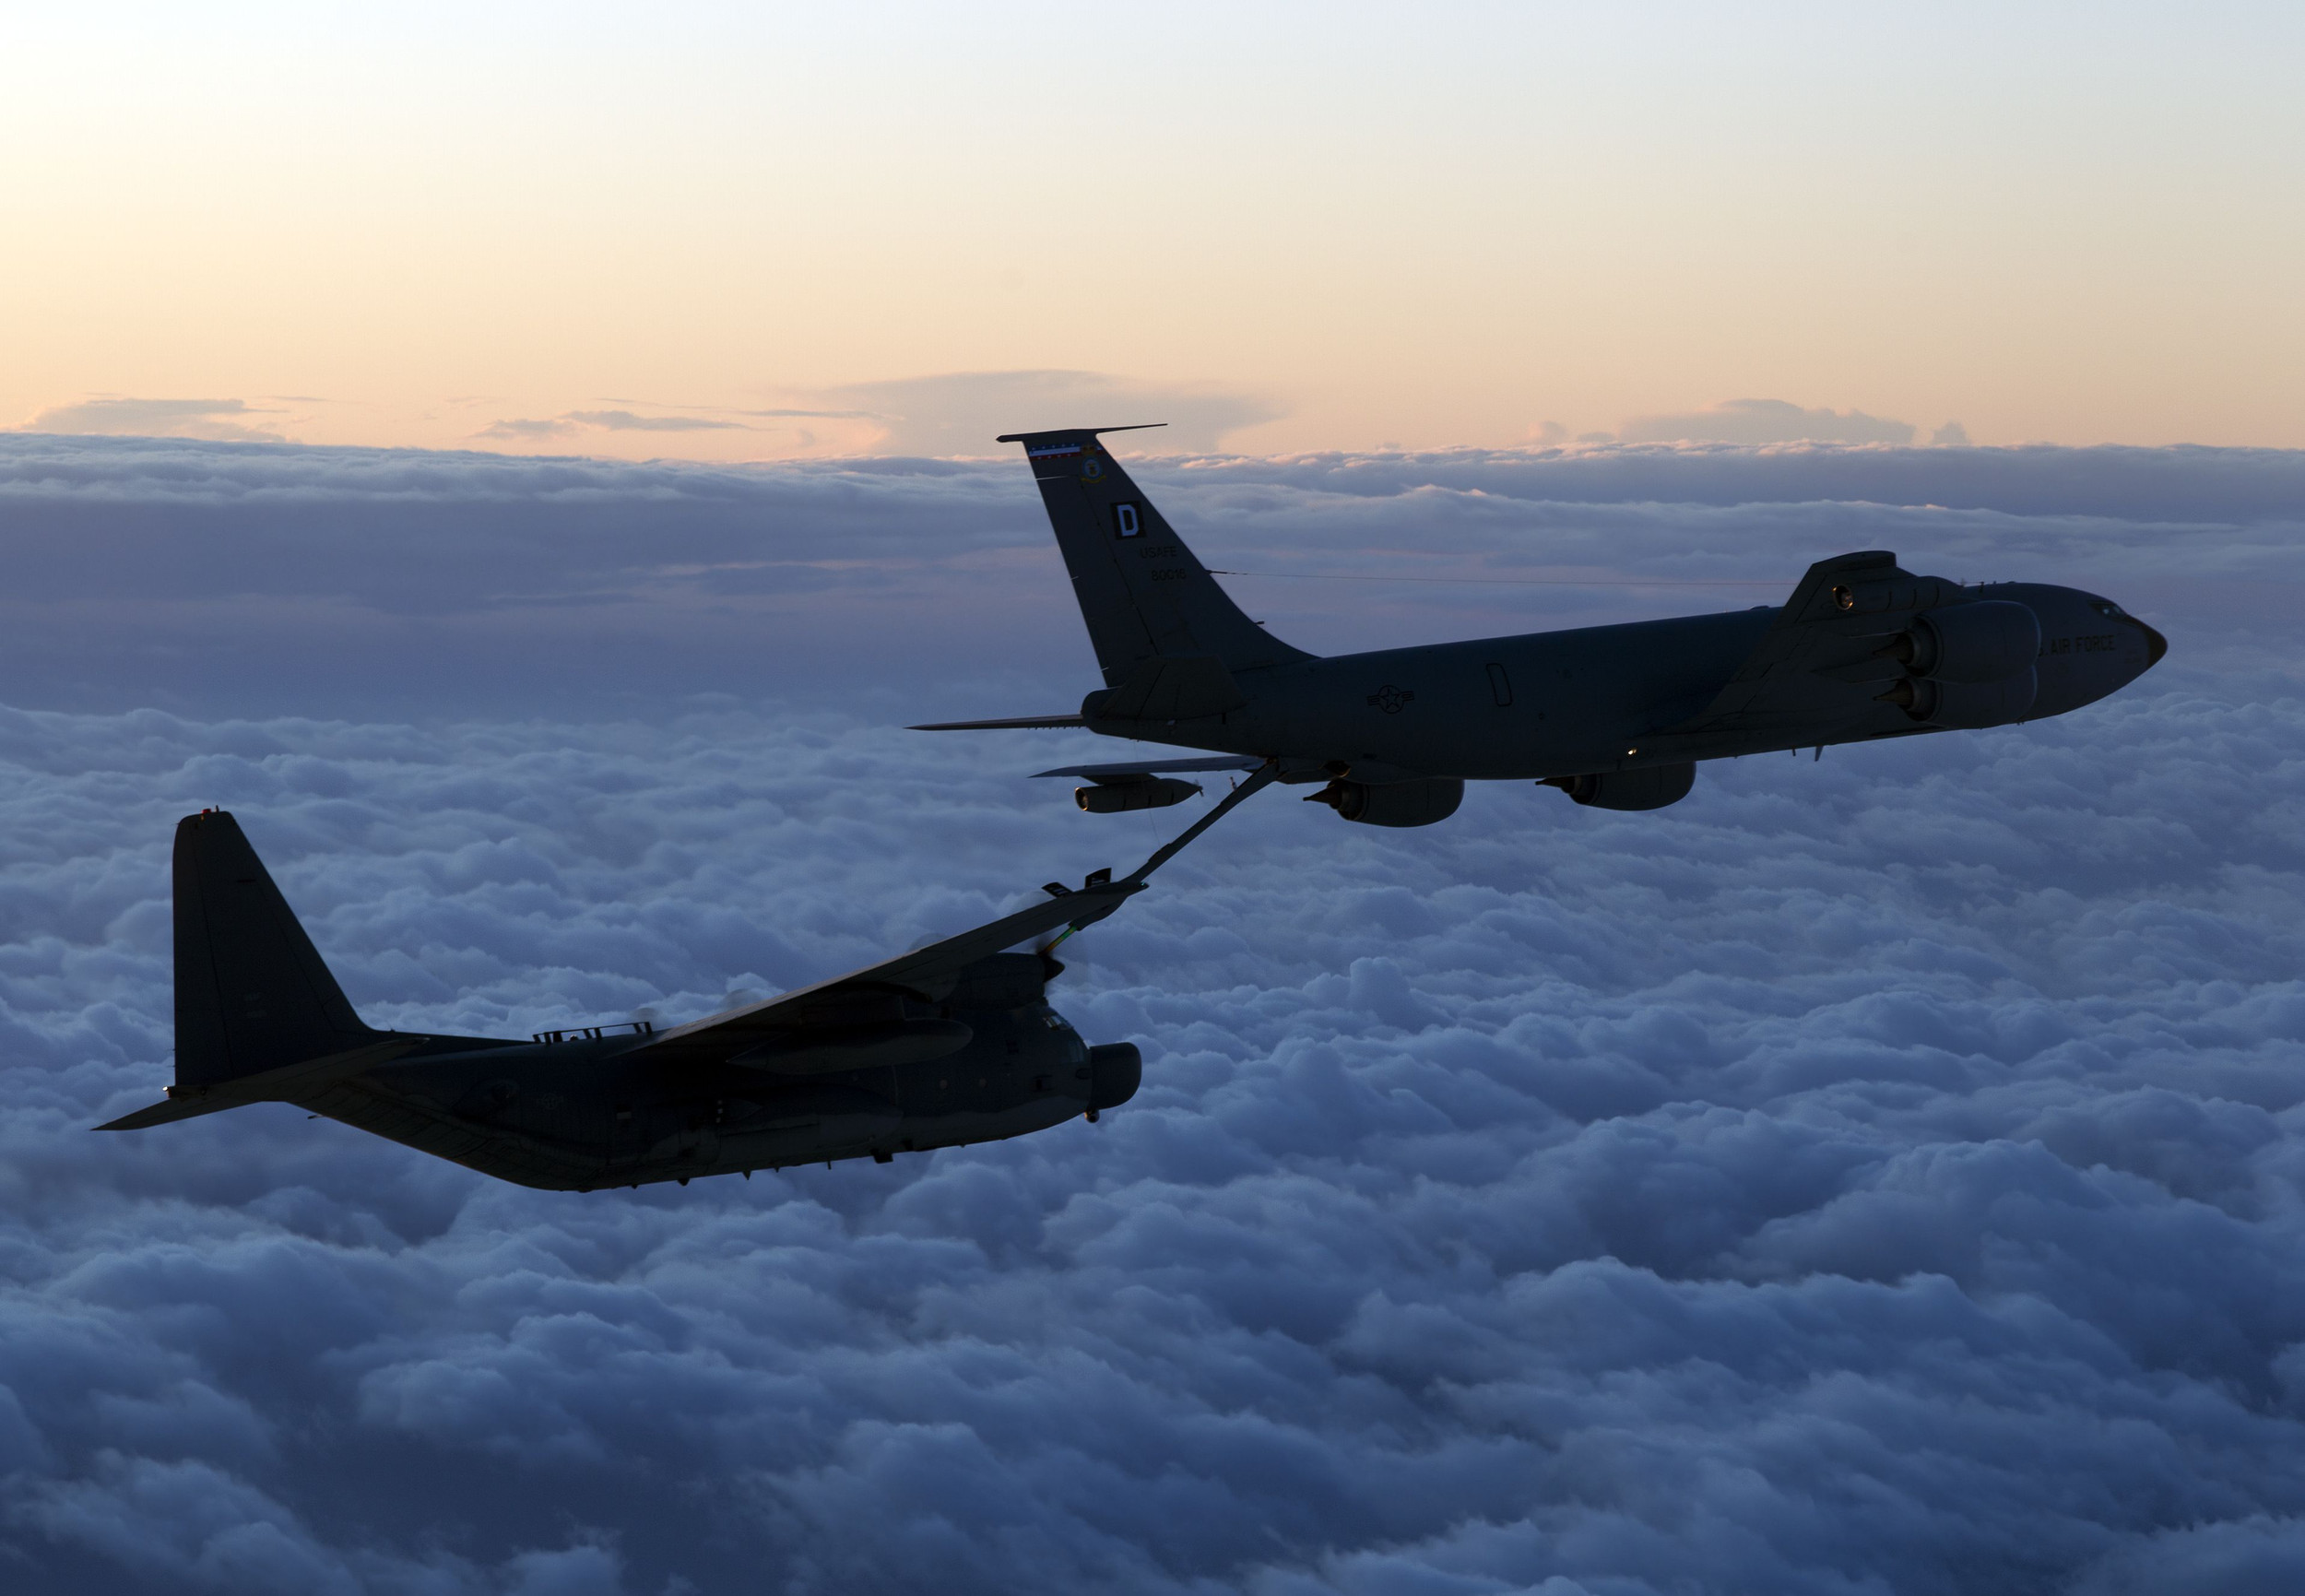 Years Late, It's 'Pass-Fail' Now For Boeing's KC-46 Tanker: Gen. Miller